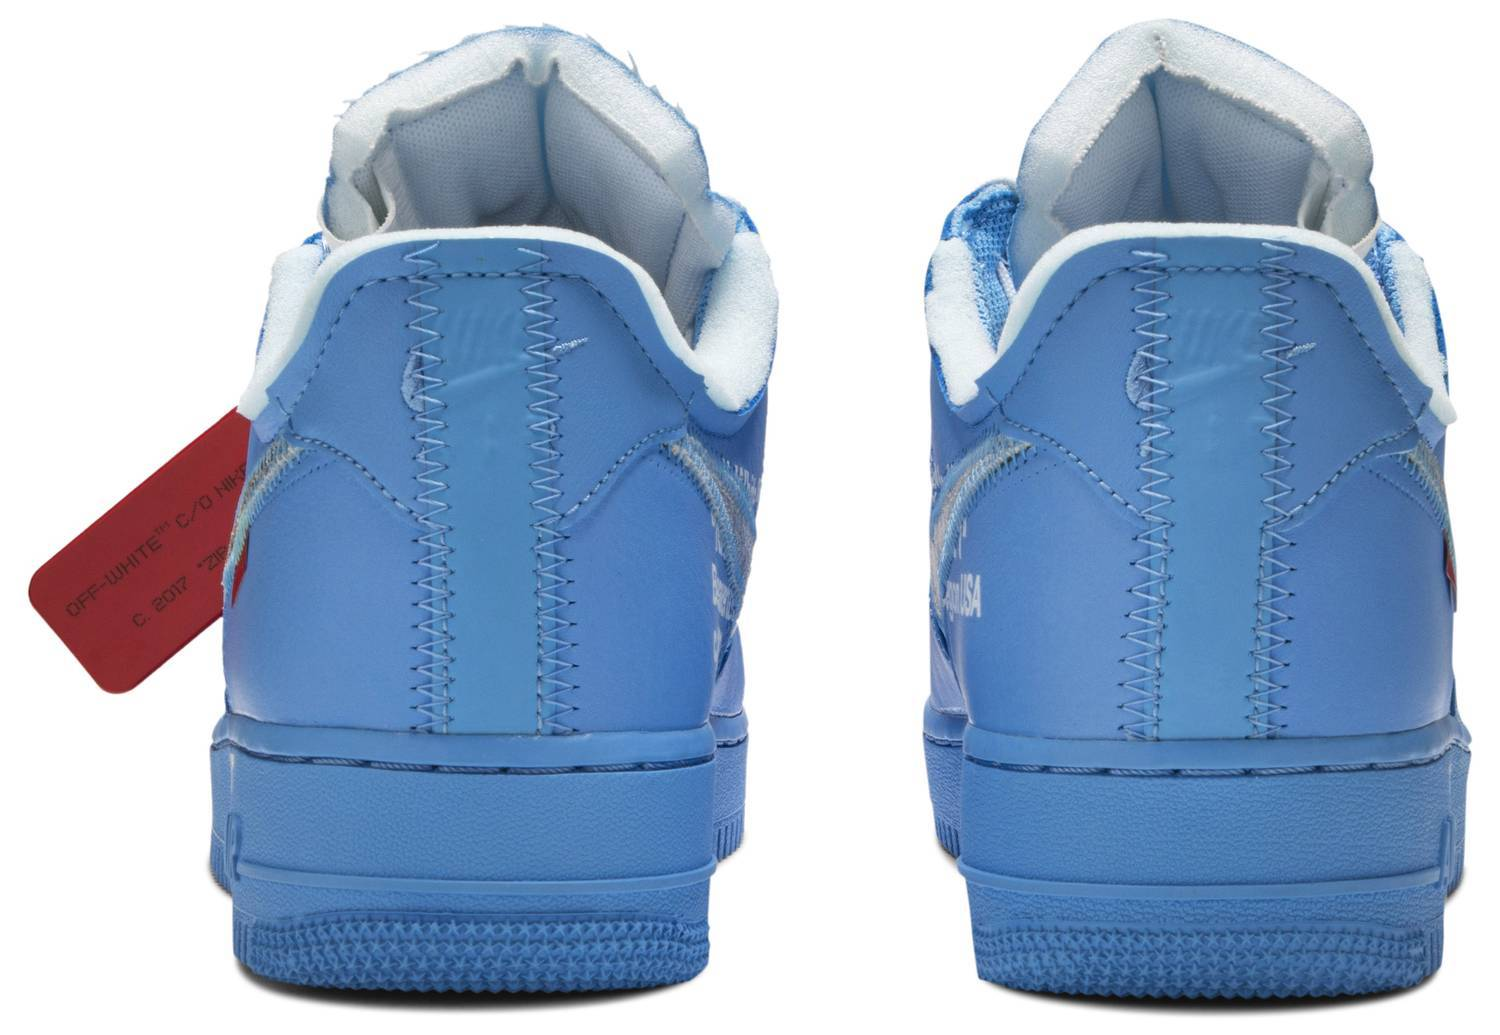 Nike Air Force 1 Low Off-White MCA University Blue - After Burn